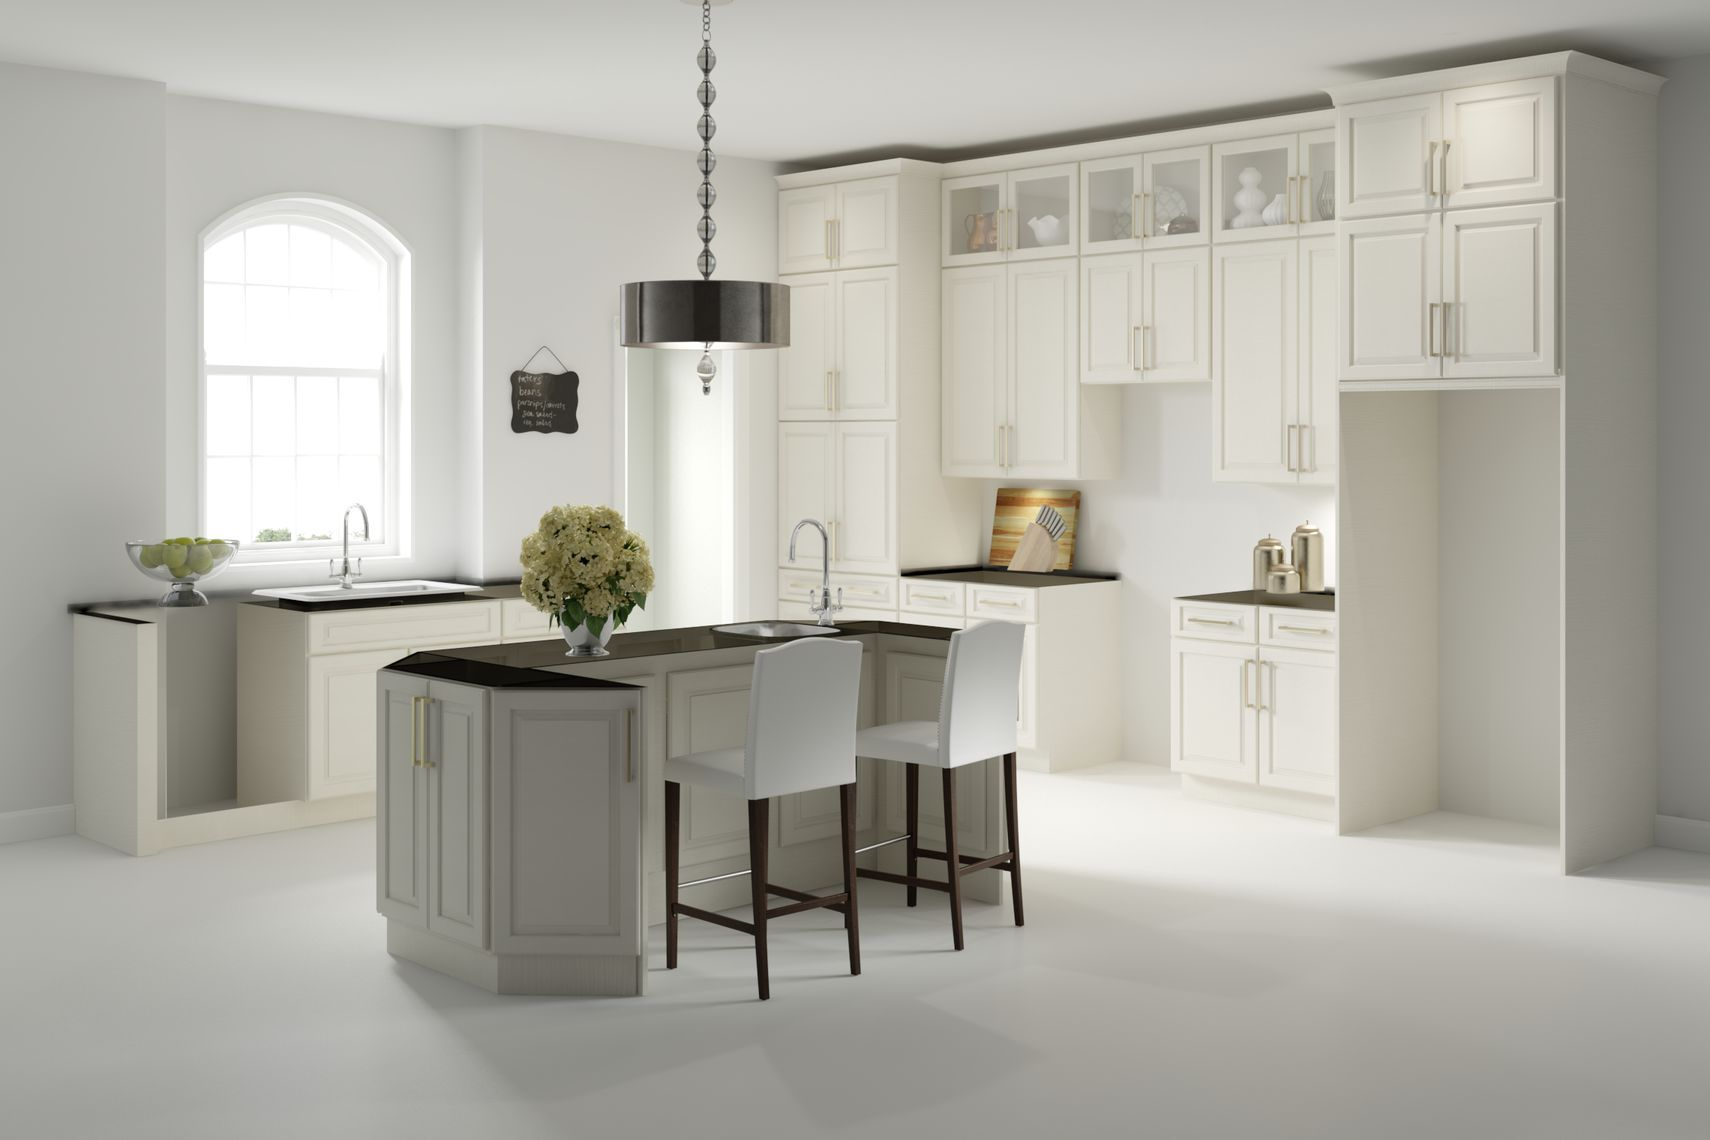 Design your dream kitchen with the LG Virtual Designer ...